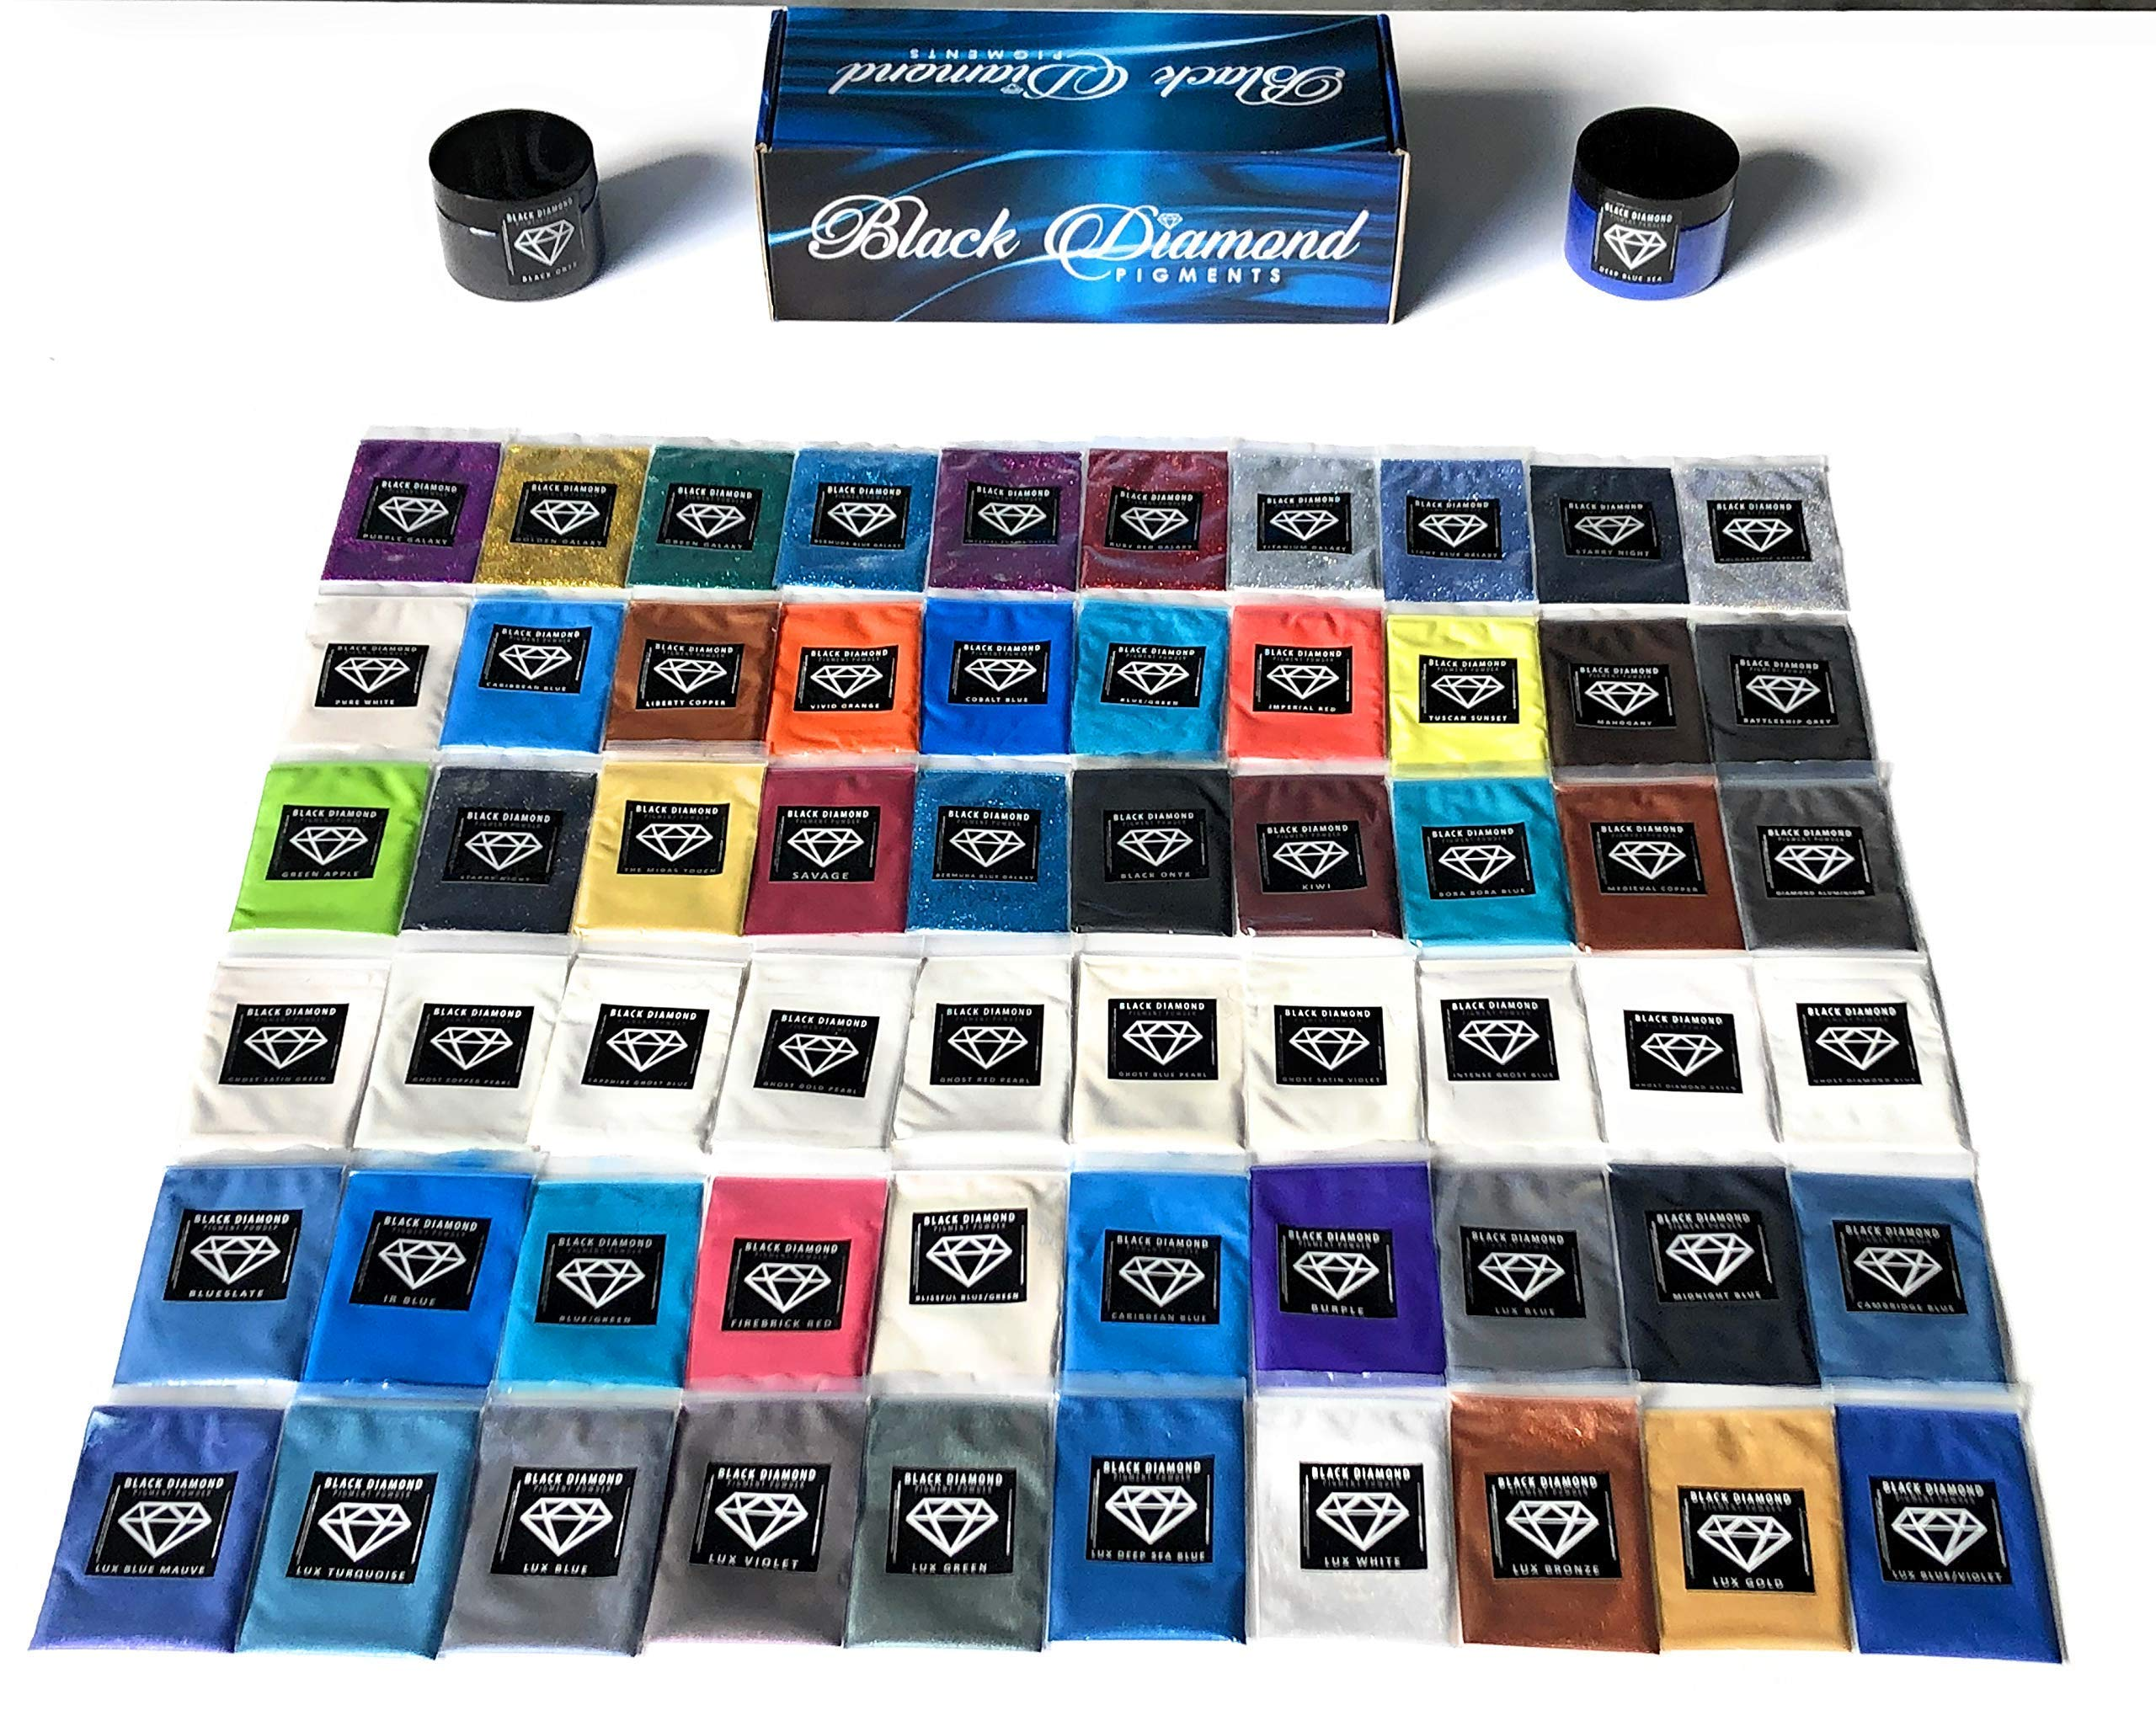 ''Pigment Box Set 2'' (2-42g Containers) are (6 Variety Packs) 60 5g Packs Total Including Ghost pigments (Epoxy,Slime,Resin,Soap) Black Diamond Pigments by BLACK DIAMOND PIGMENTS